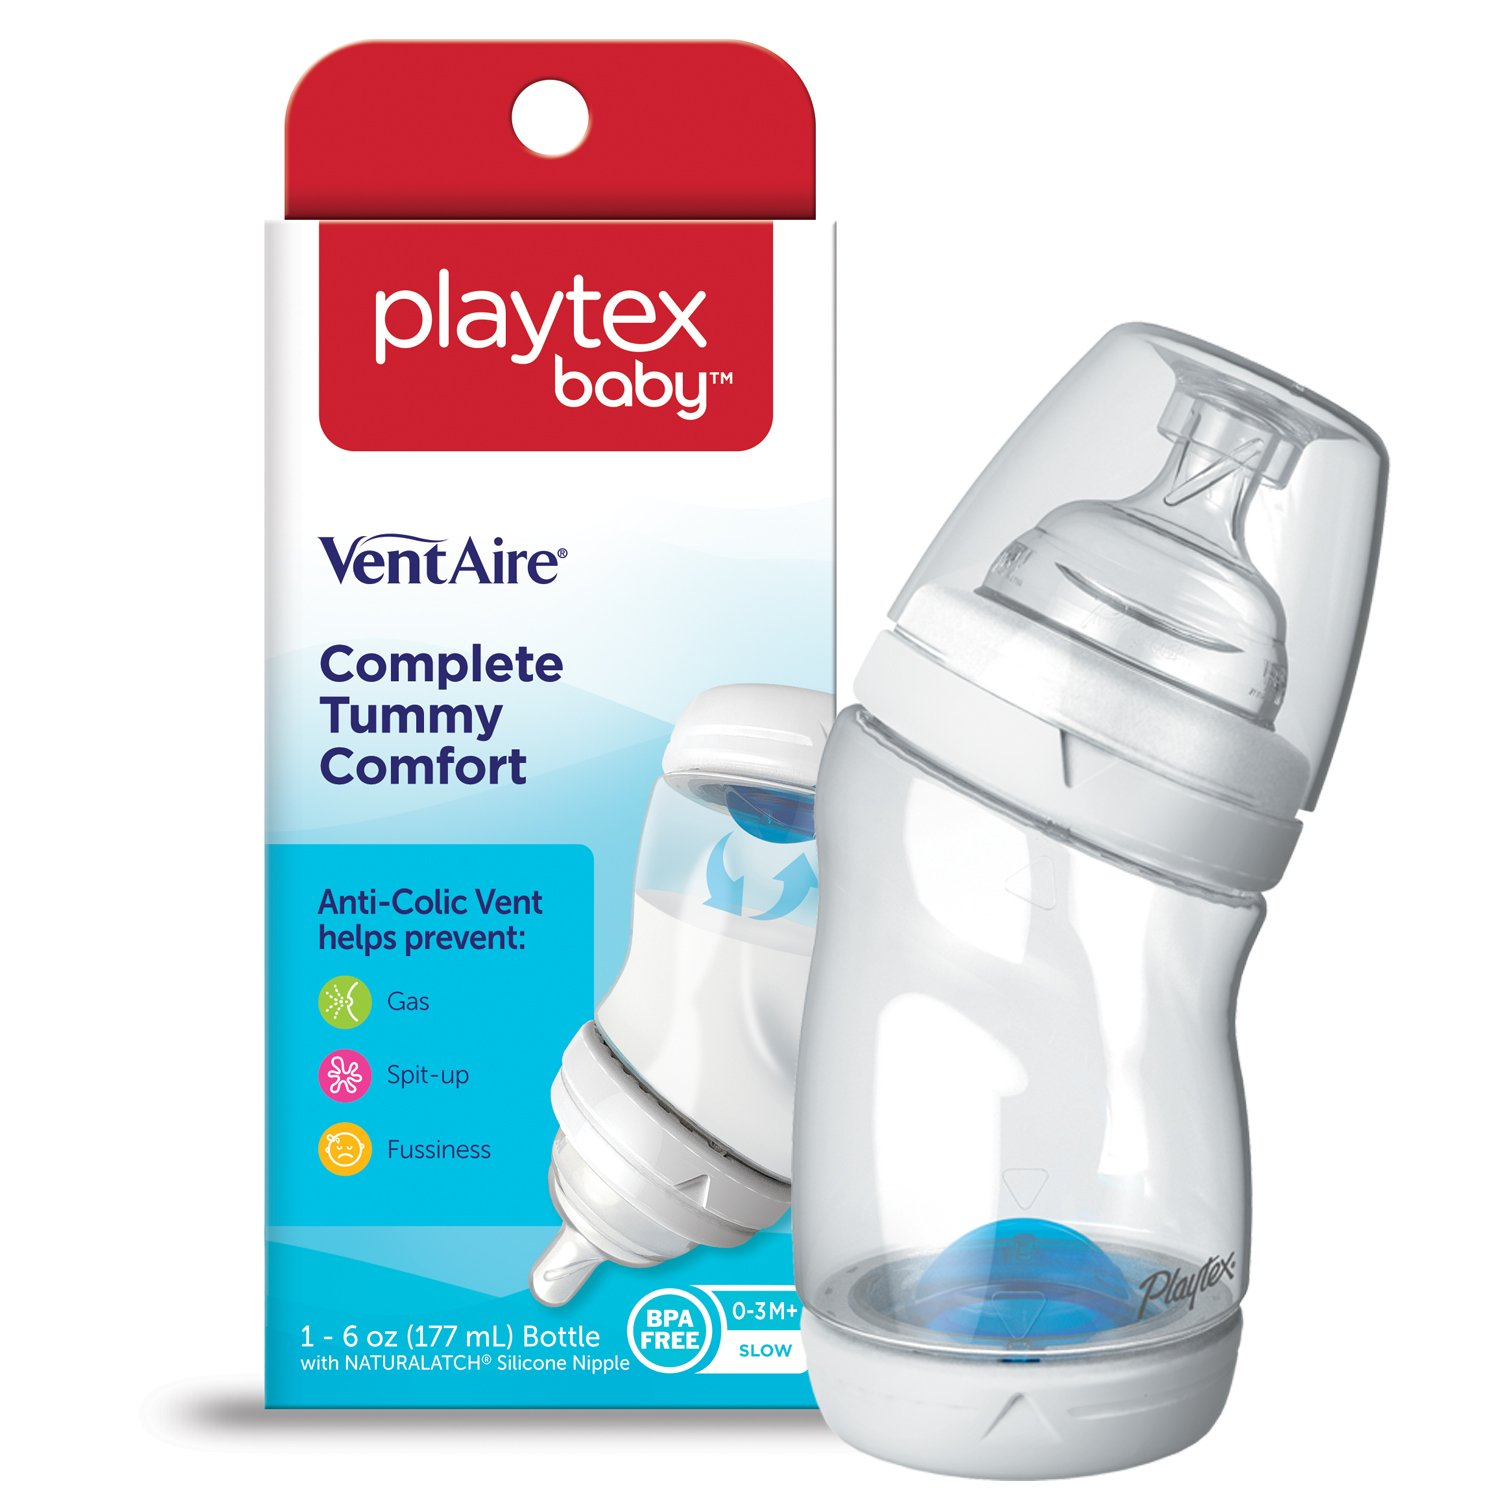 Playtex Baby BPA-Free VentAire Baby Bottles with Unique Anti-Colic Back Venting System 6 Ounce